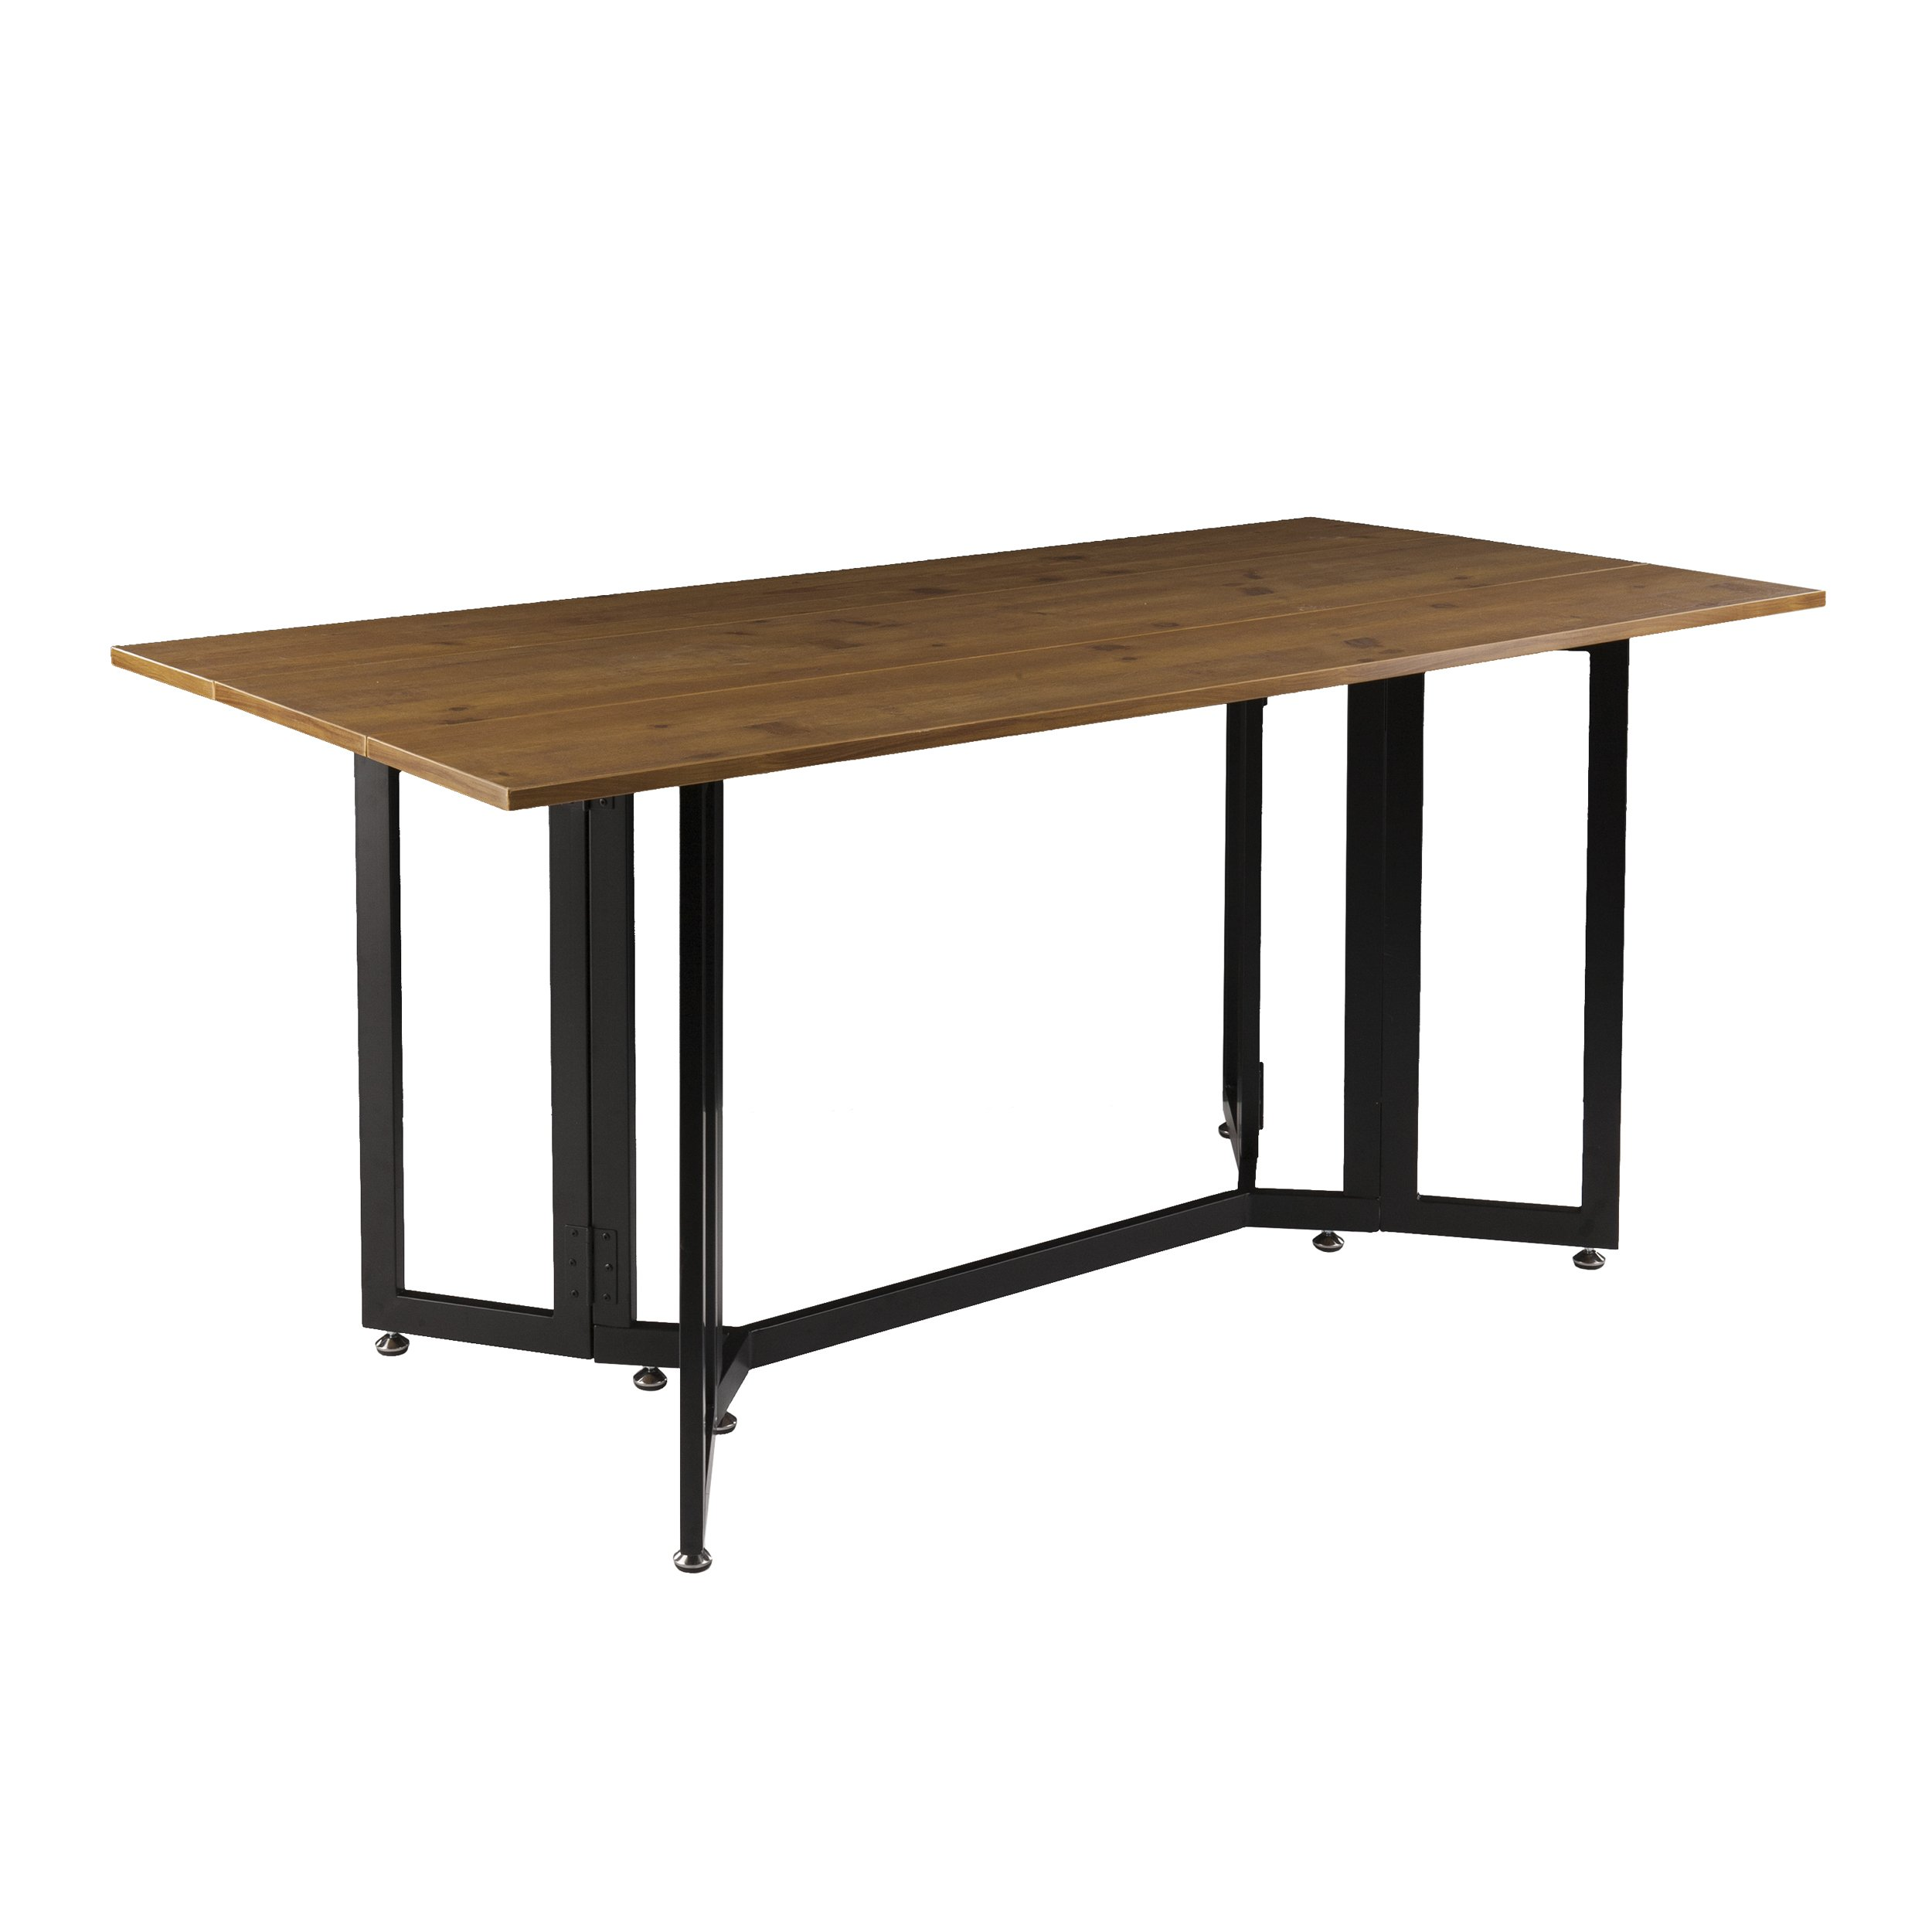 Holly & Martin Driness Drop Leaf Console Dining Table, Weathered Oak Finish with Black Metal Base by Holly & Martin (Image #4)